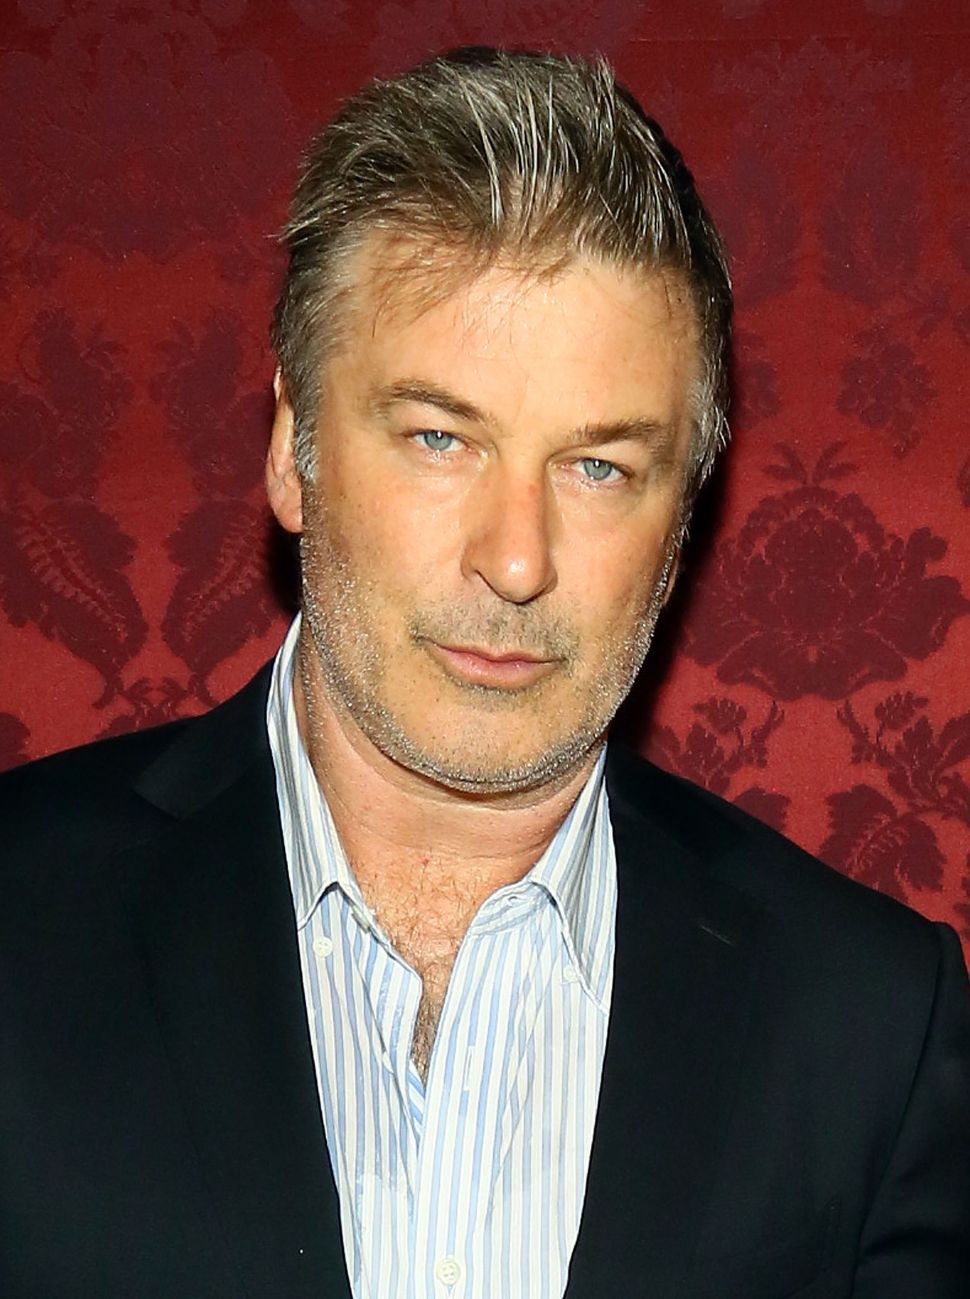 Alec Baldwin Becomes Issue in Idaho Congressional Race